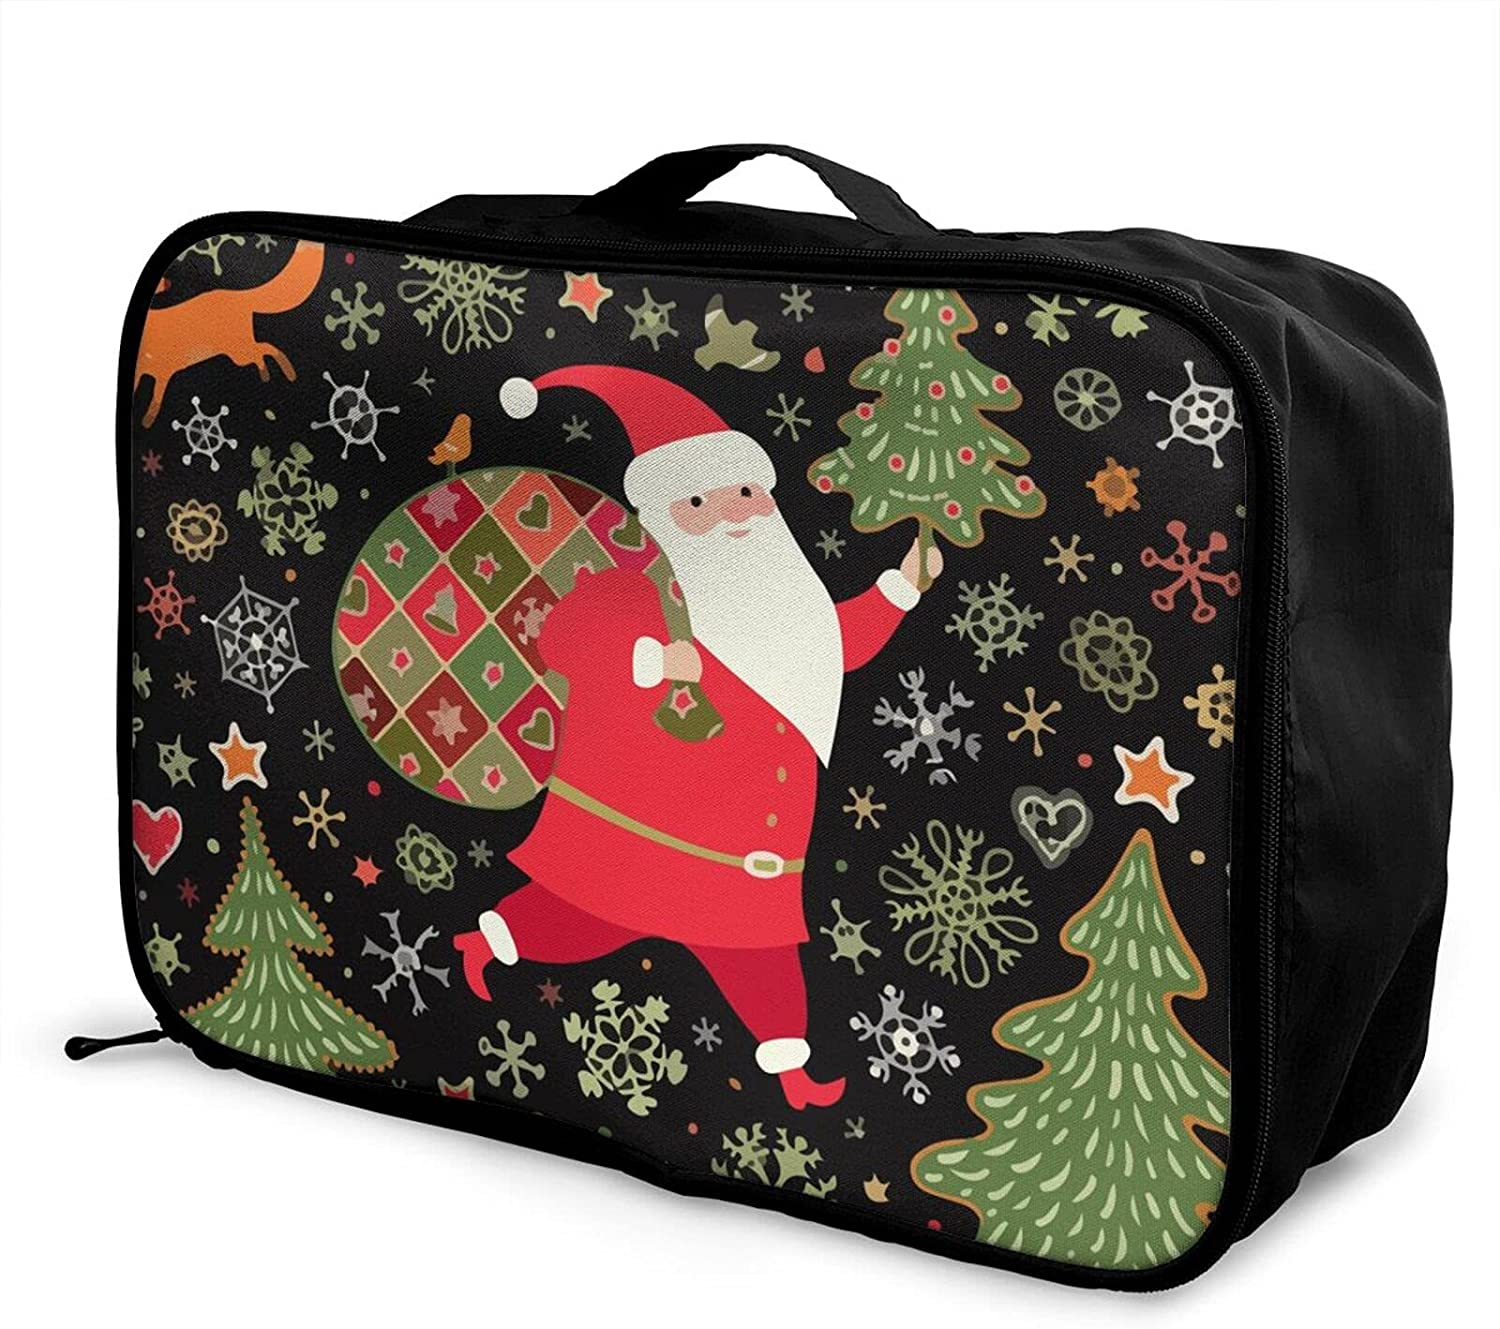 Foldable Travel Bag Tote Christmas Funny Brand Cheap Sale Venue Claus Santa To Inexpensive Carry-On